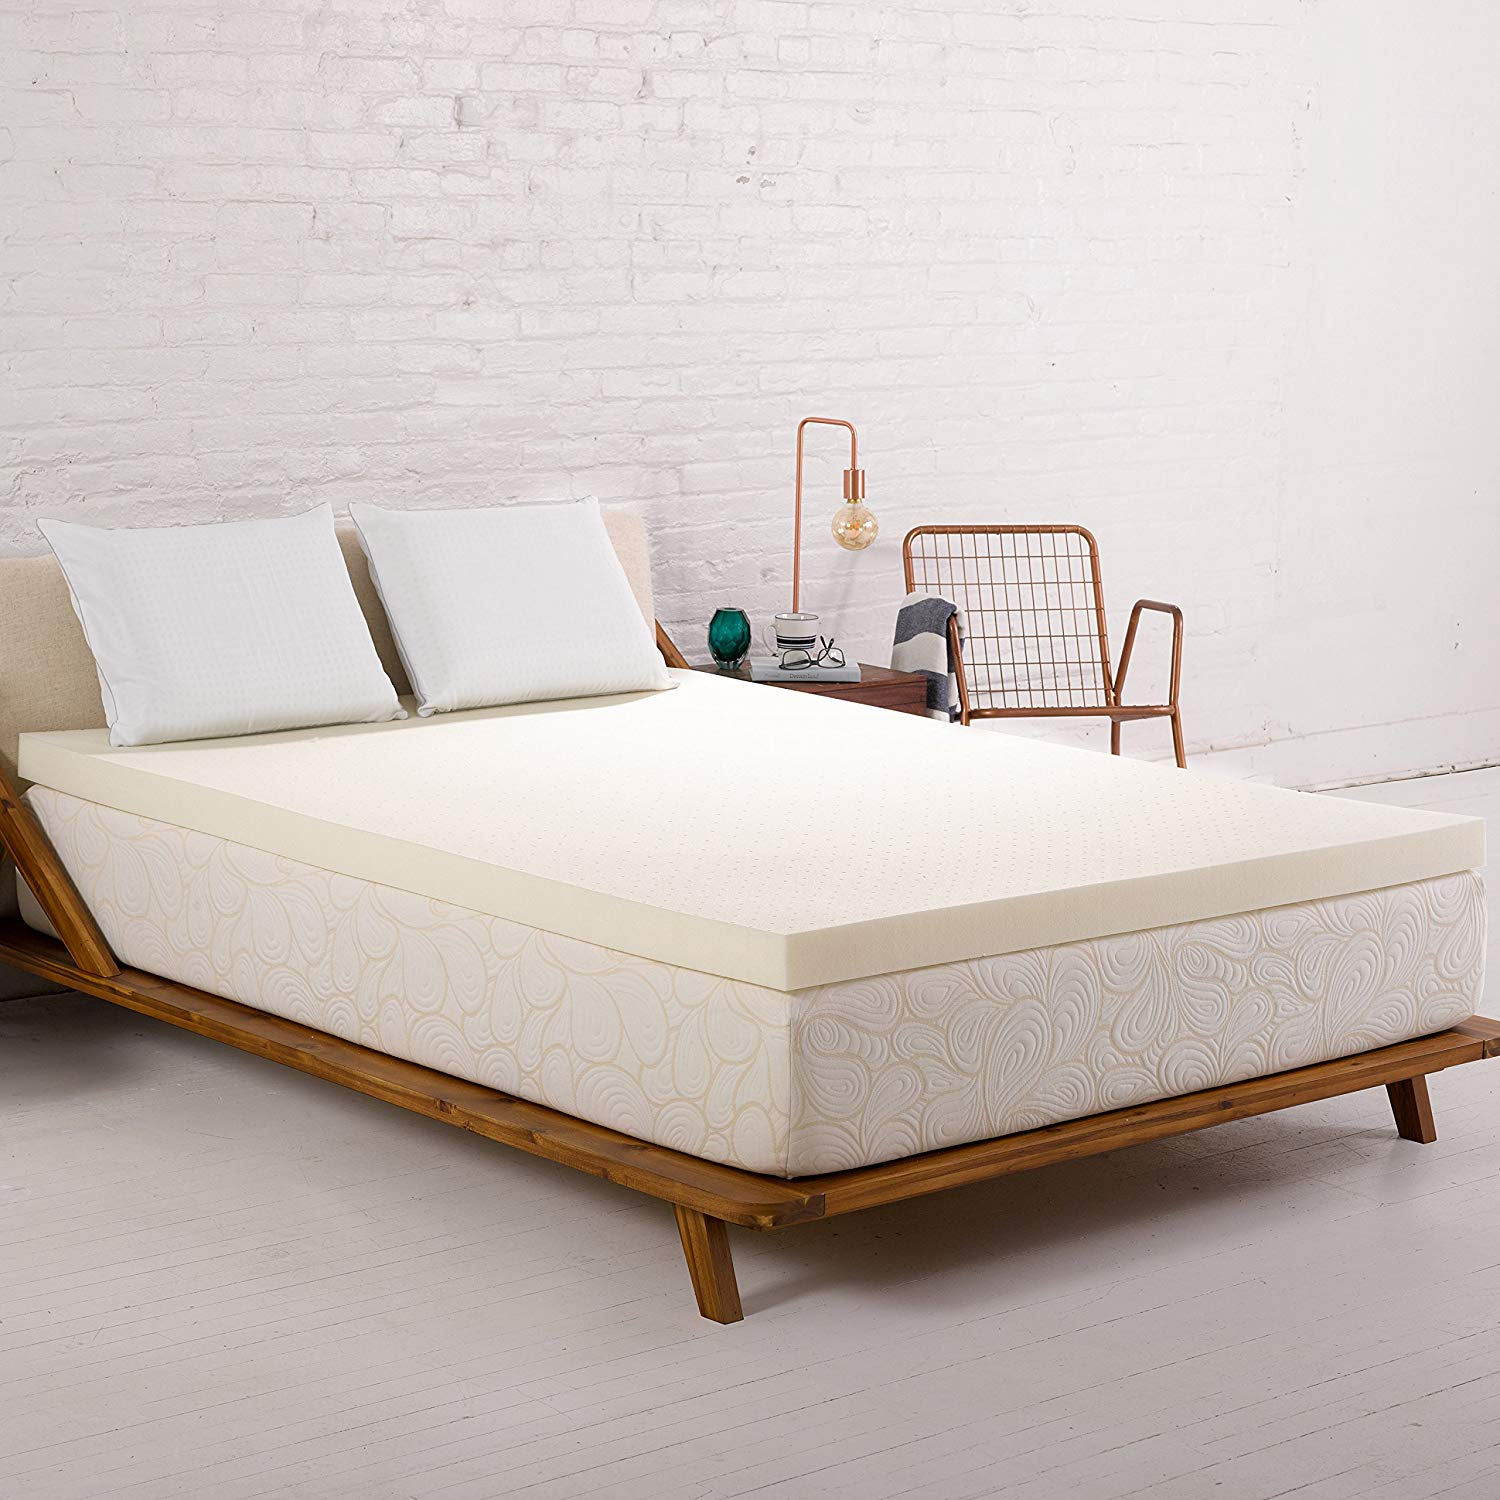 The Best Mattress Topper For Side Sleepers Brands And Buying Guide